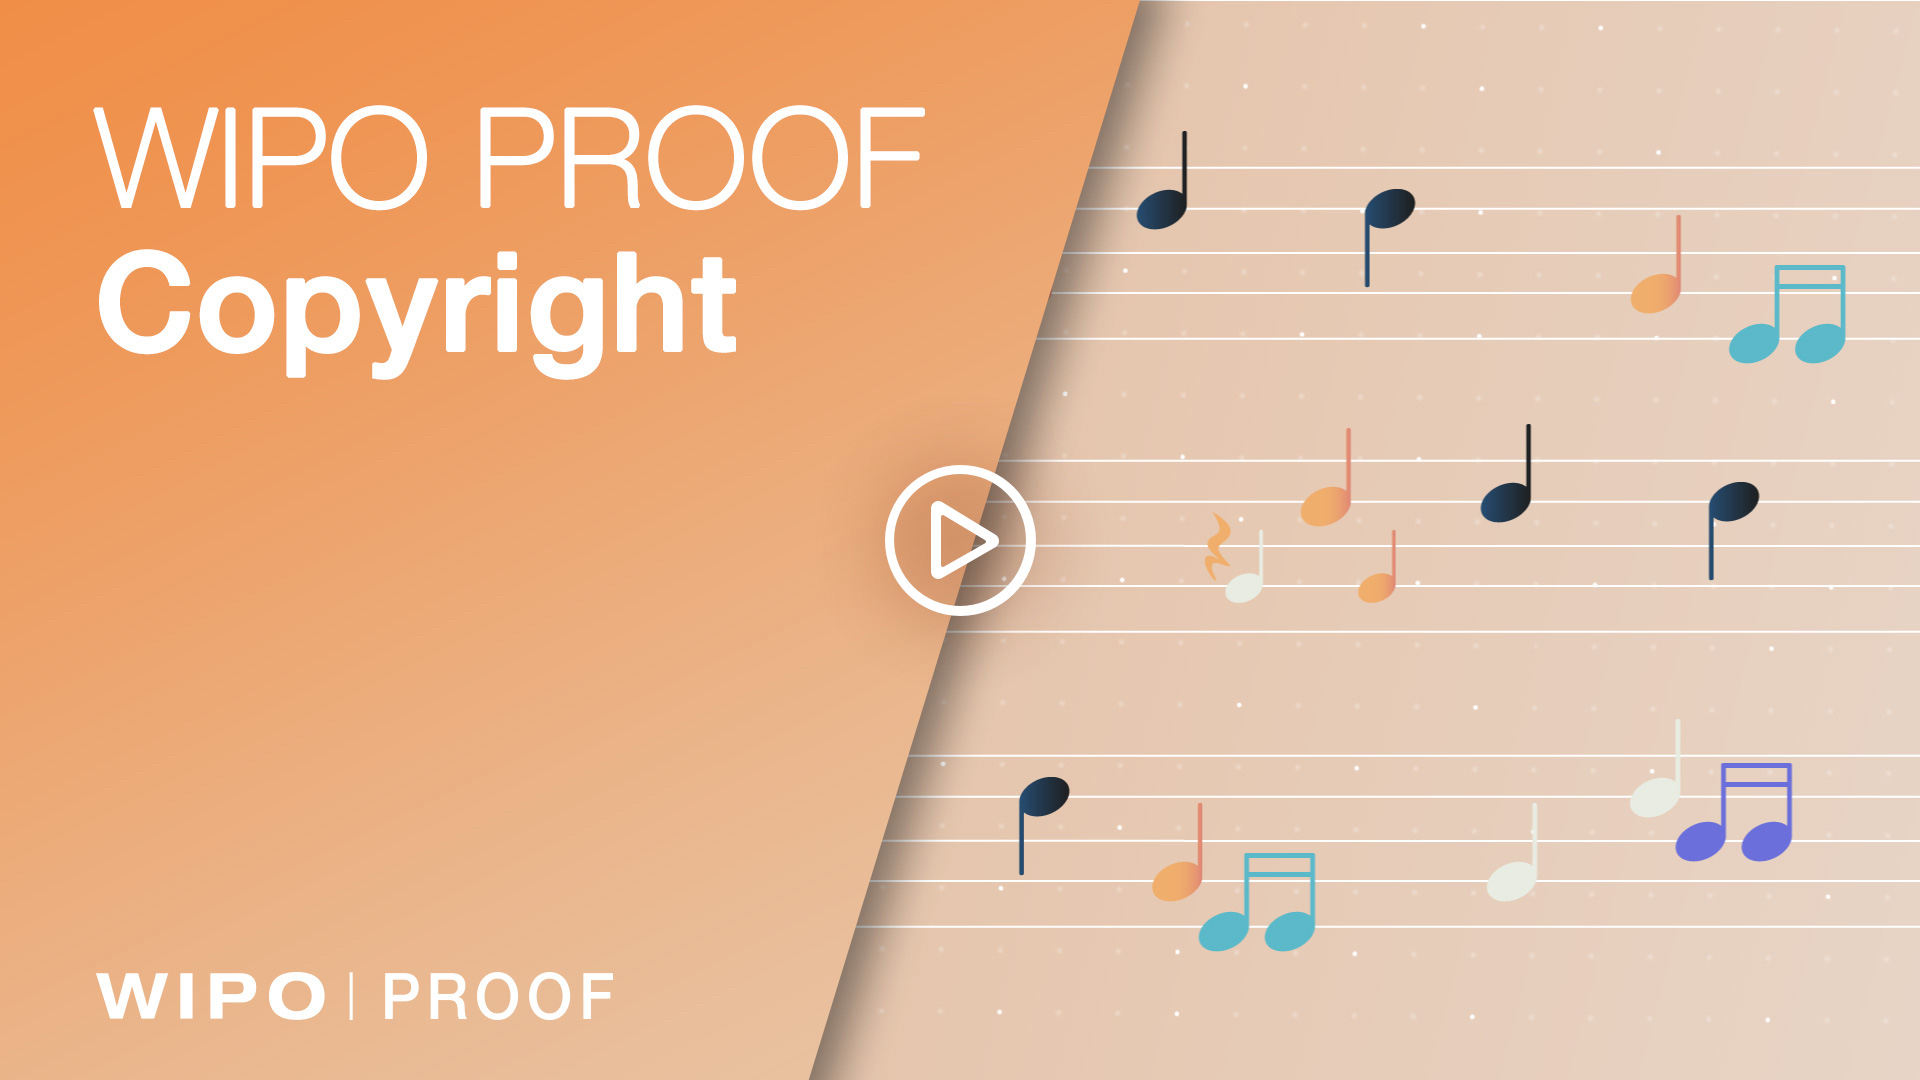 video of how WIPO PROOF can be used for creative works and designs